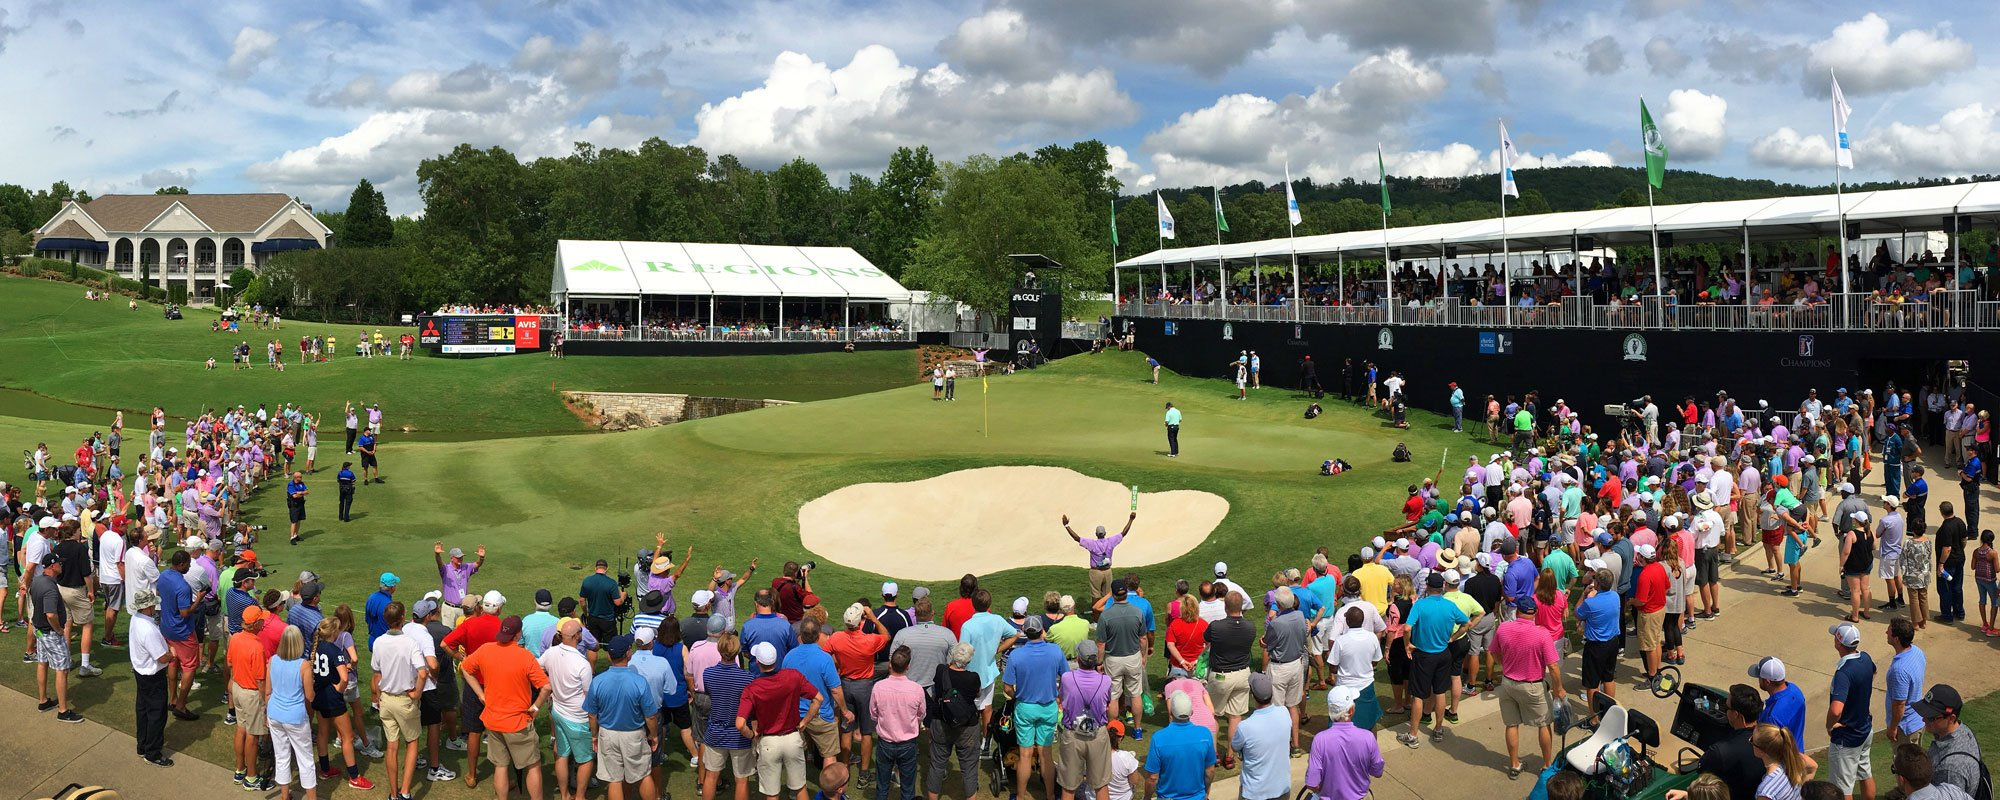 The PGA Tour Champions Return to Greystone for Regions Tradition